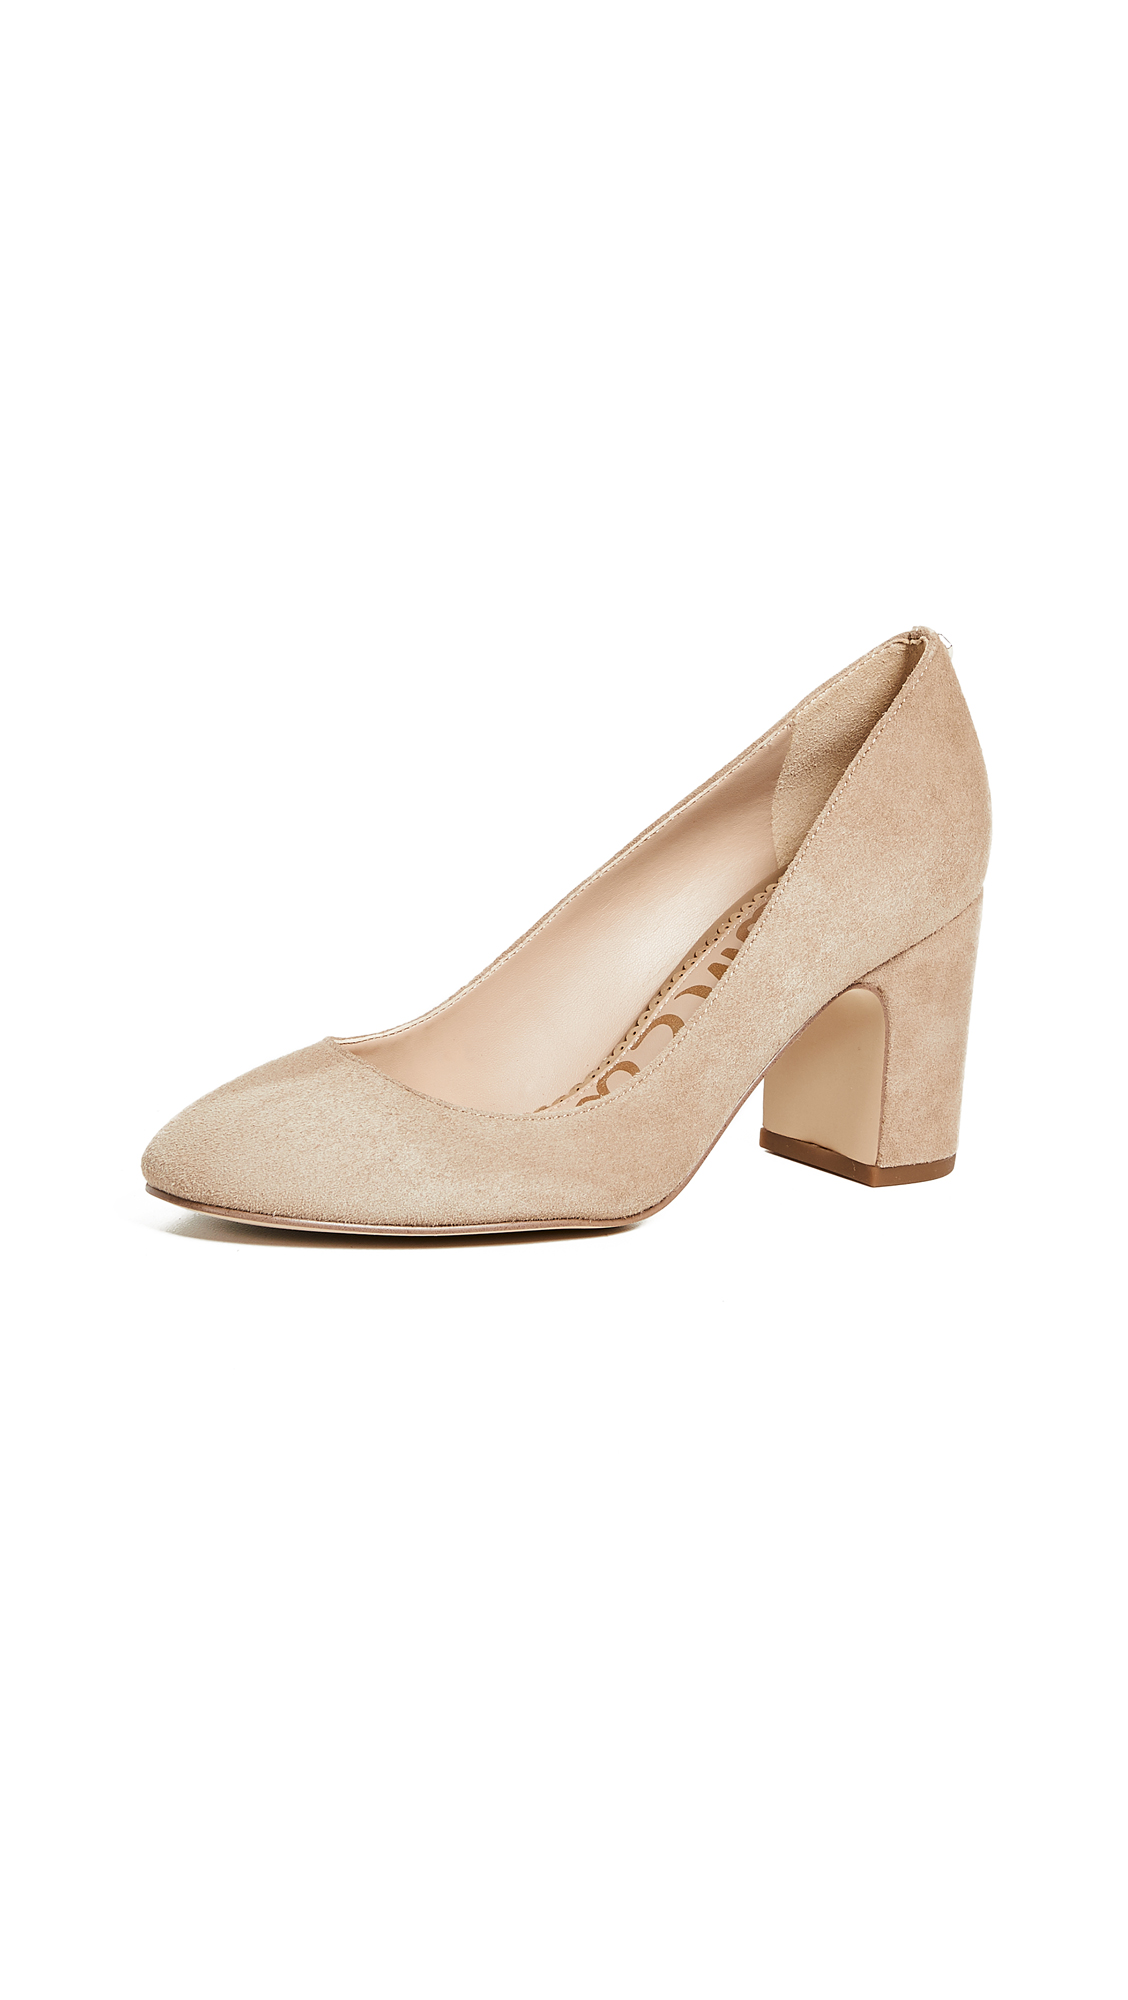 Sam Edelman Junie Suede Pumps - Oatmeal